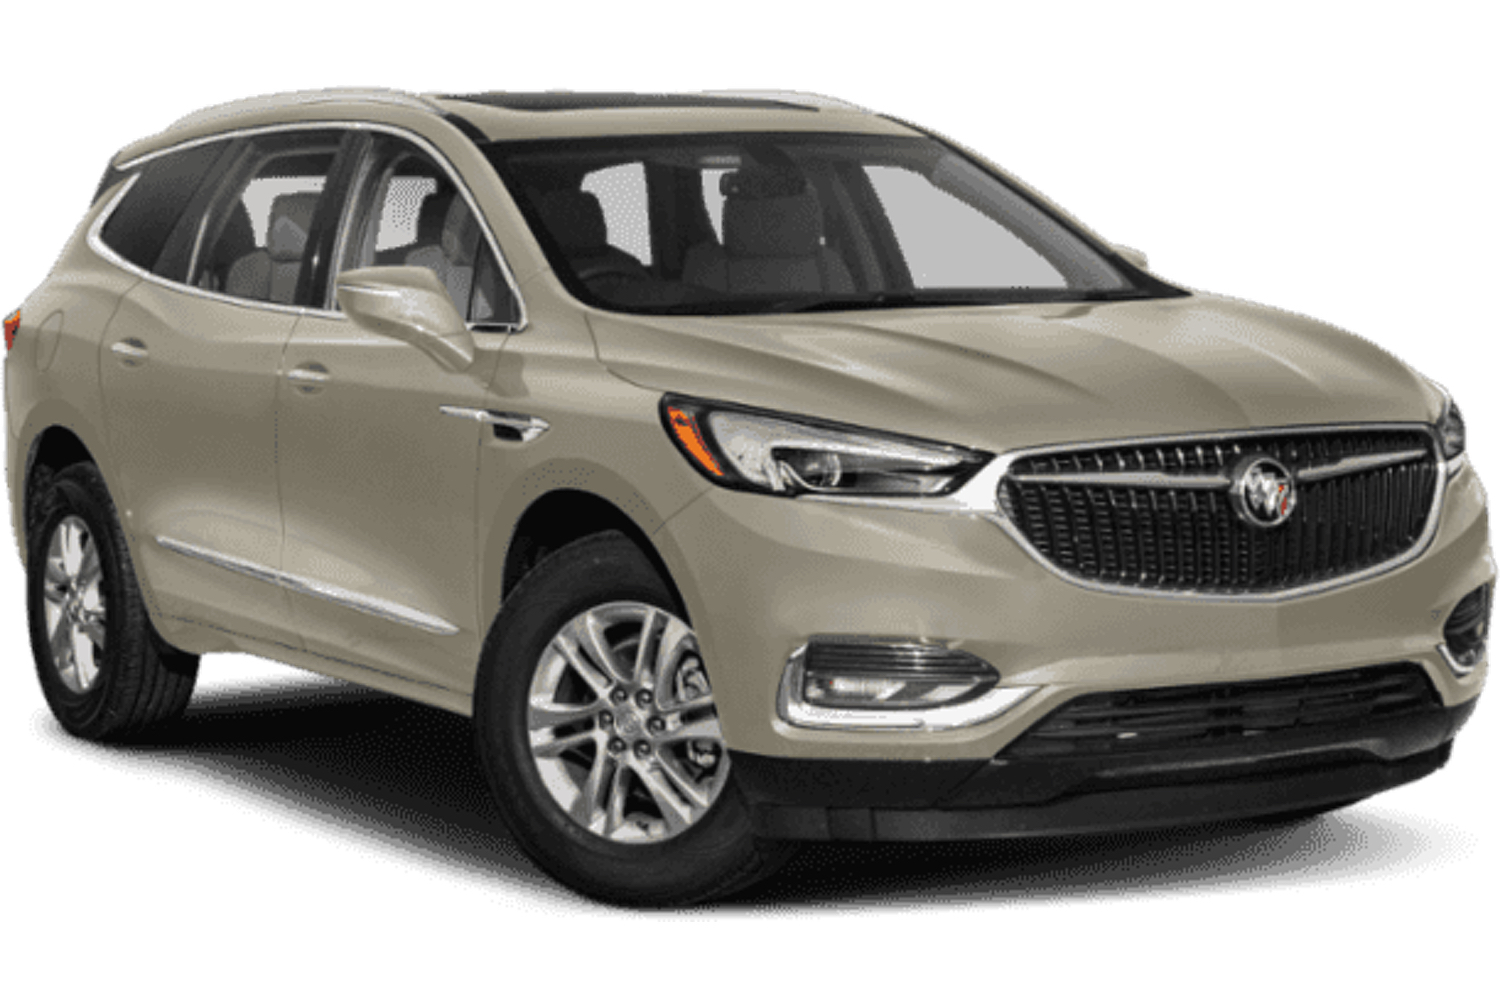 2020 Buick Enclave Gets New Champagne Gold Color | Gm Authority 2021 Buick Enclave Avenir Owners Manual, Pictures, Colors